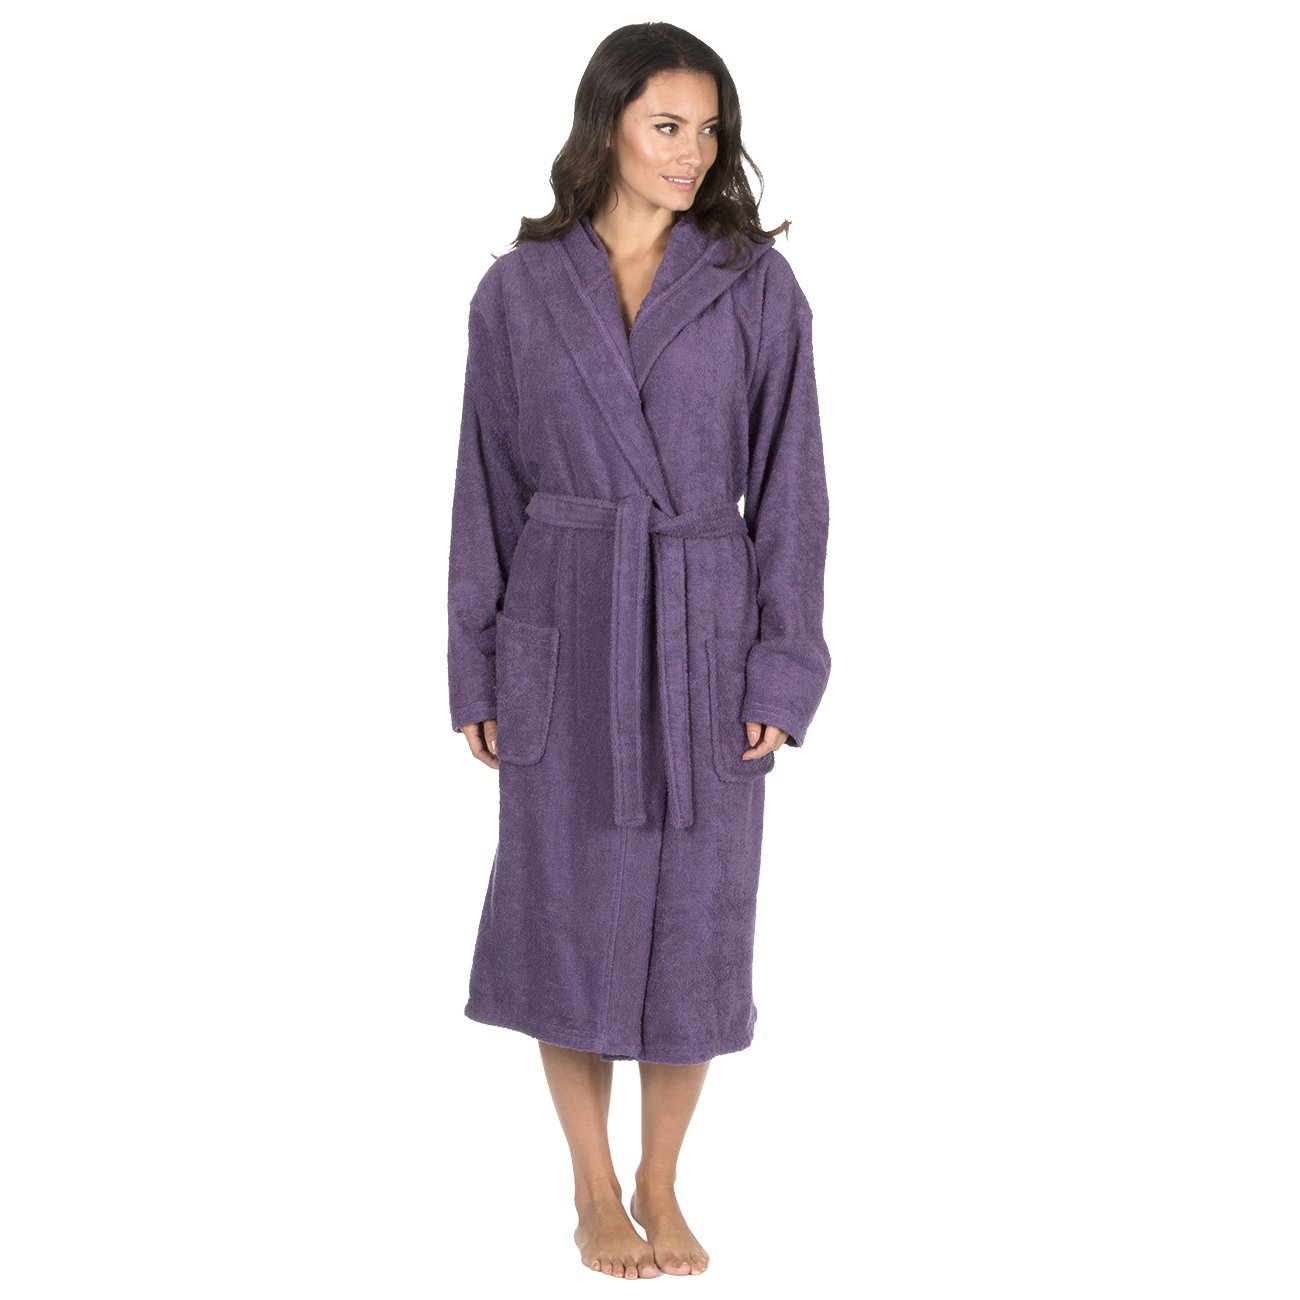 Forever Dreaming Women's Luxury Terry Towelling Bath Robe - Hooded Cotton Hotel Spa Gown